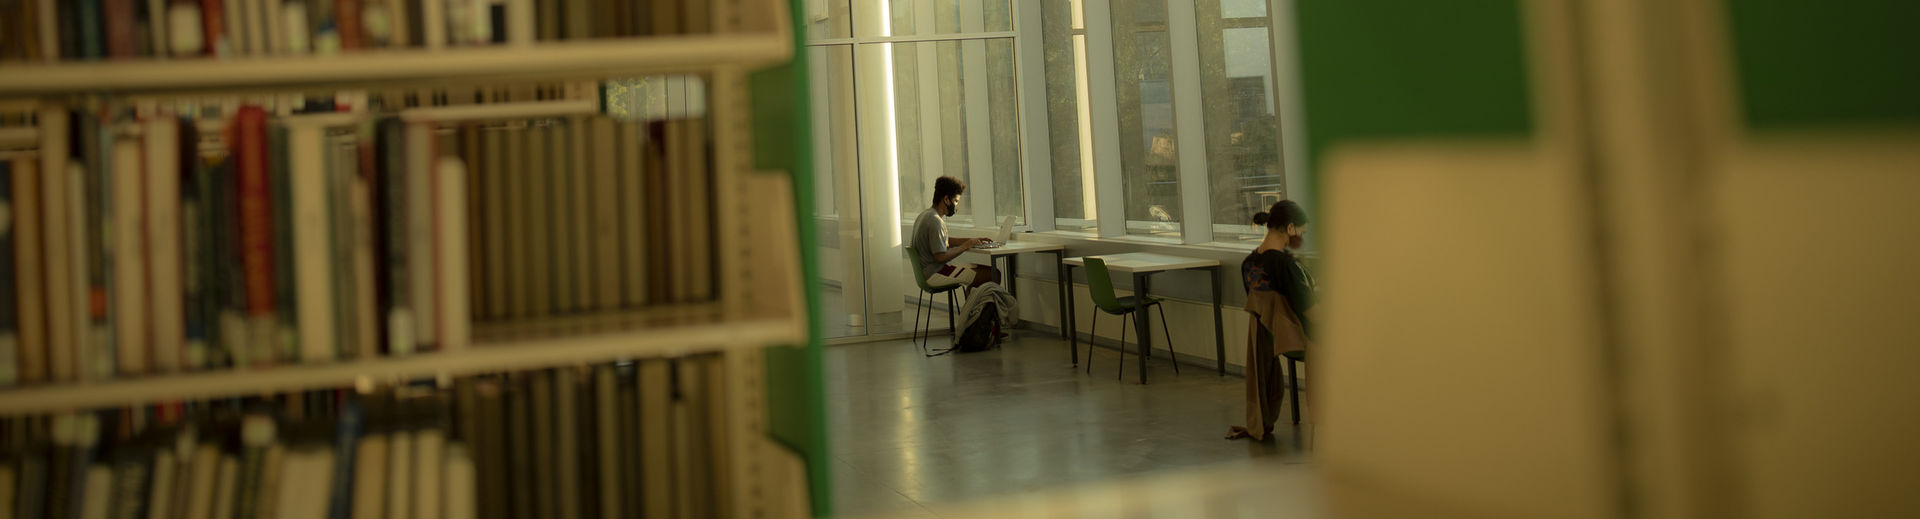 Socially distanced students studying at desks in library